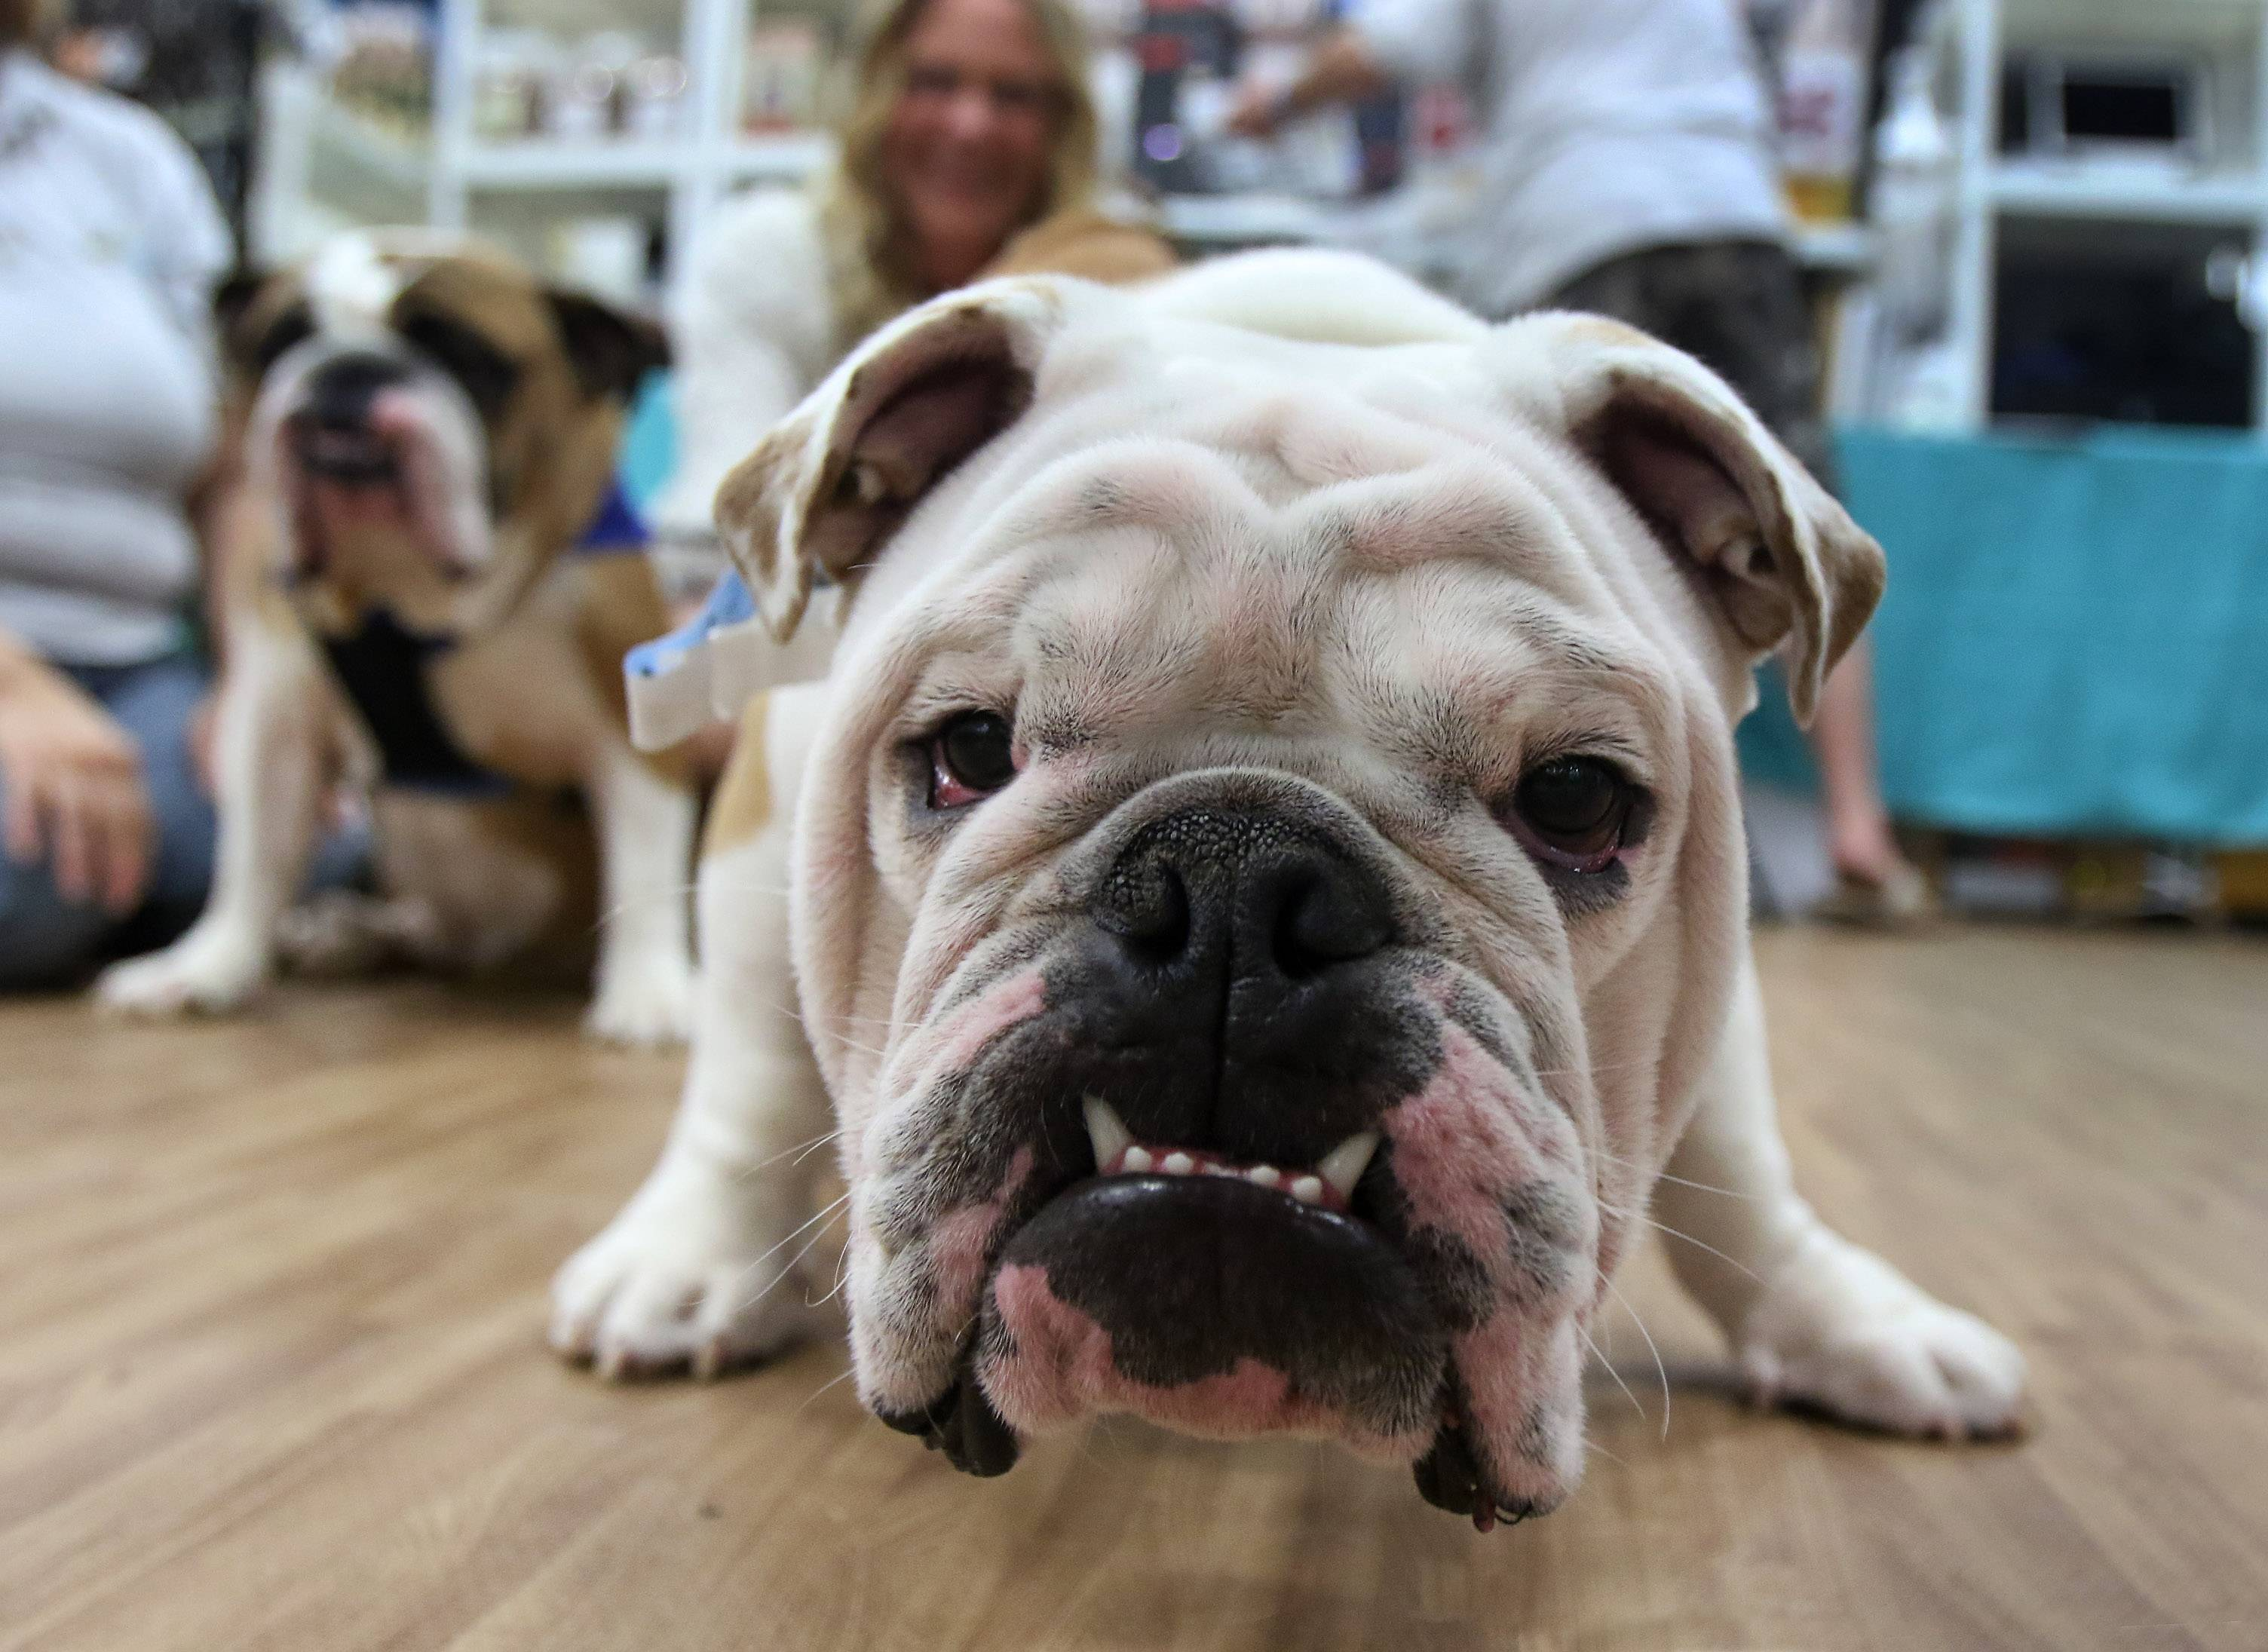 Murphy, an English bulldog, greets visitors at Adop-A-Bulldog during the Chicago Pet Show on Sunday at the Libertyville Sports Complex. The event featured pet services, pet products, entertainment, magic acts, and a chance to adopt pets from local rescue agencies.